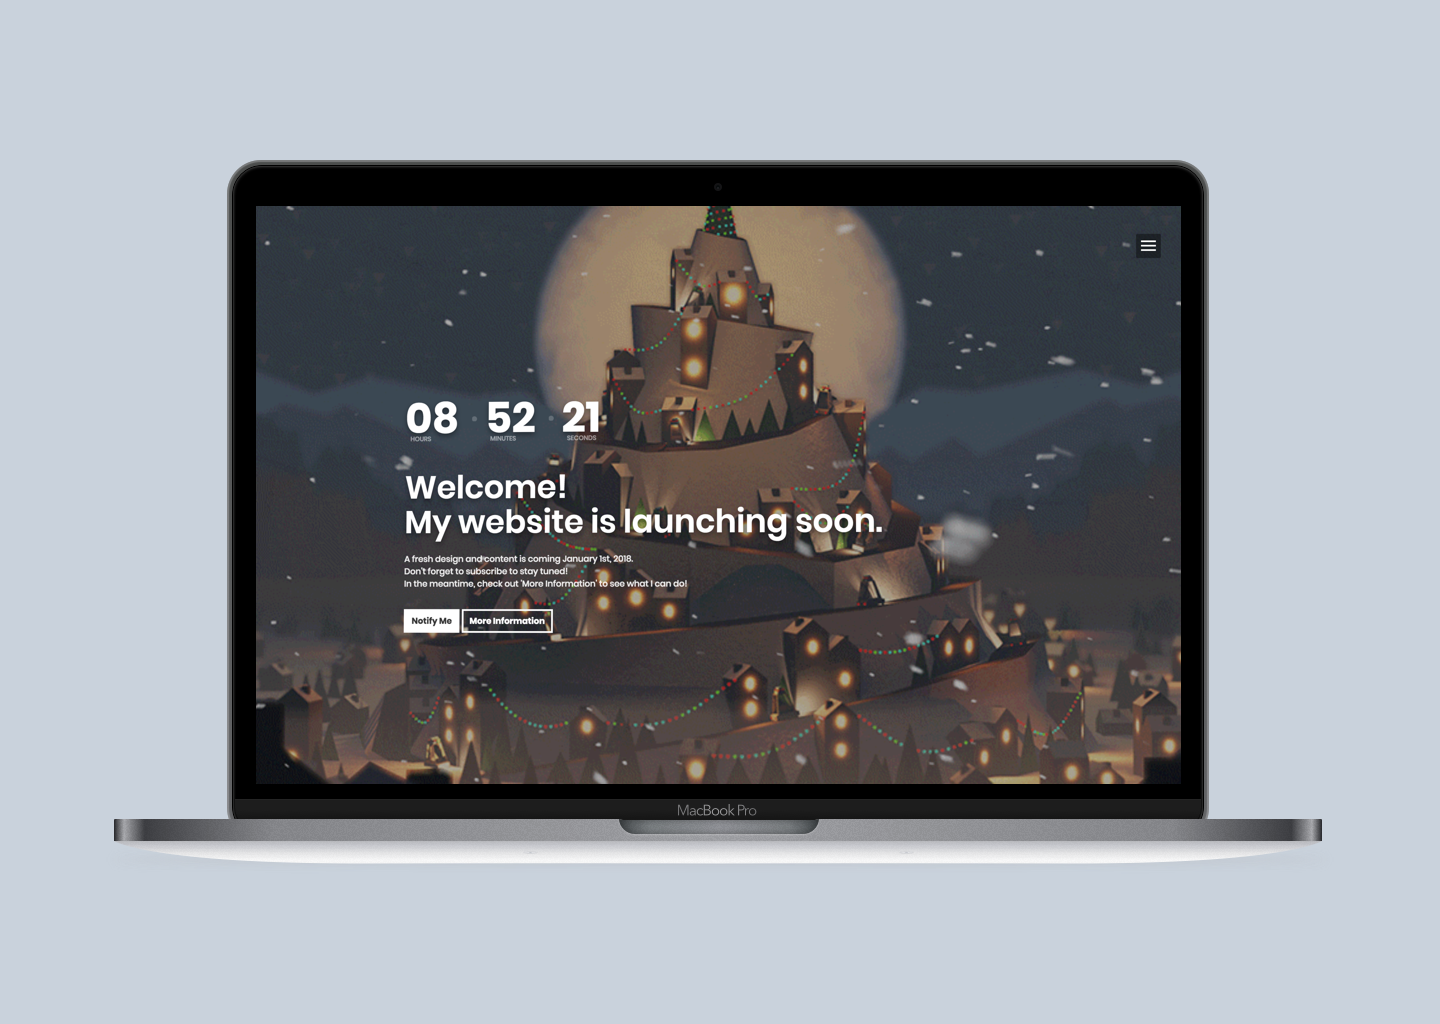 Animated Launching Soon - Personal Site